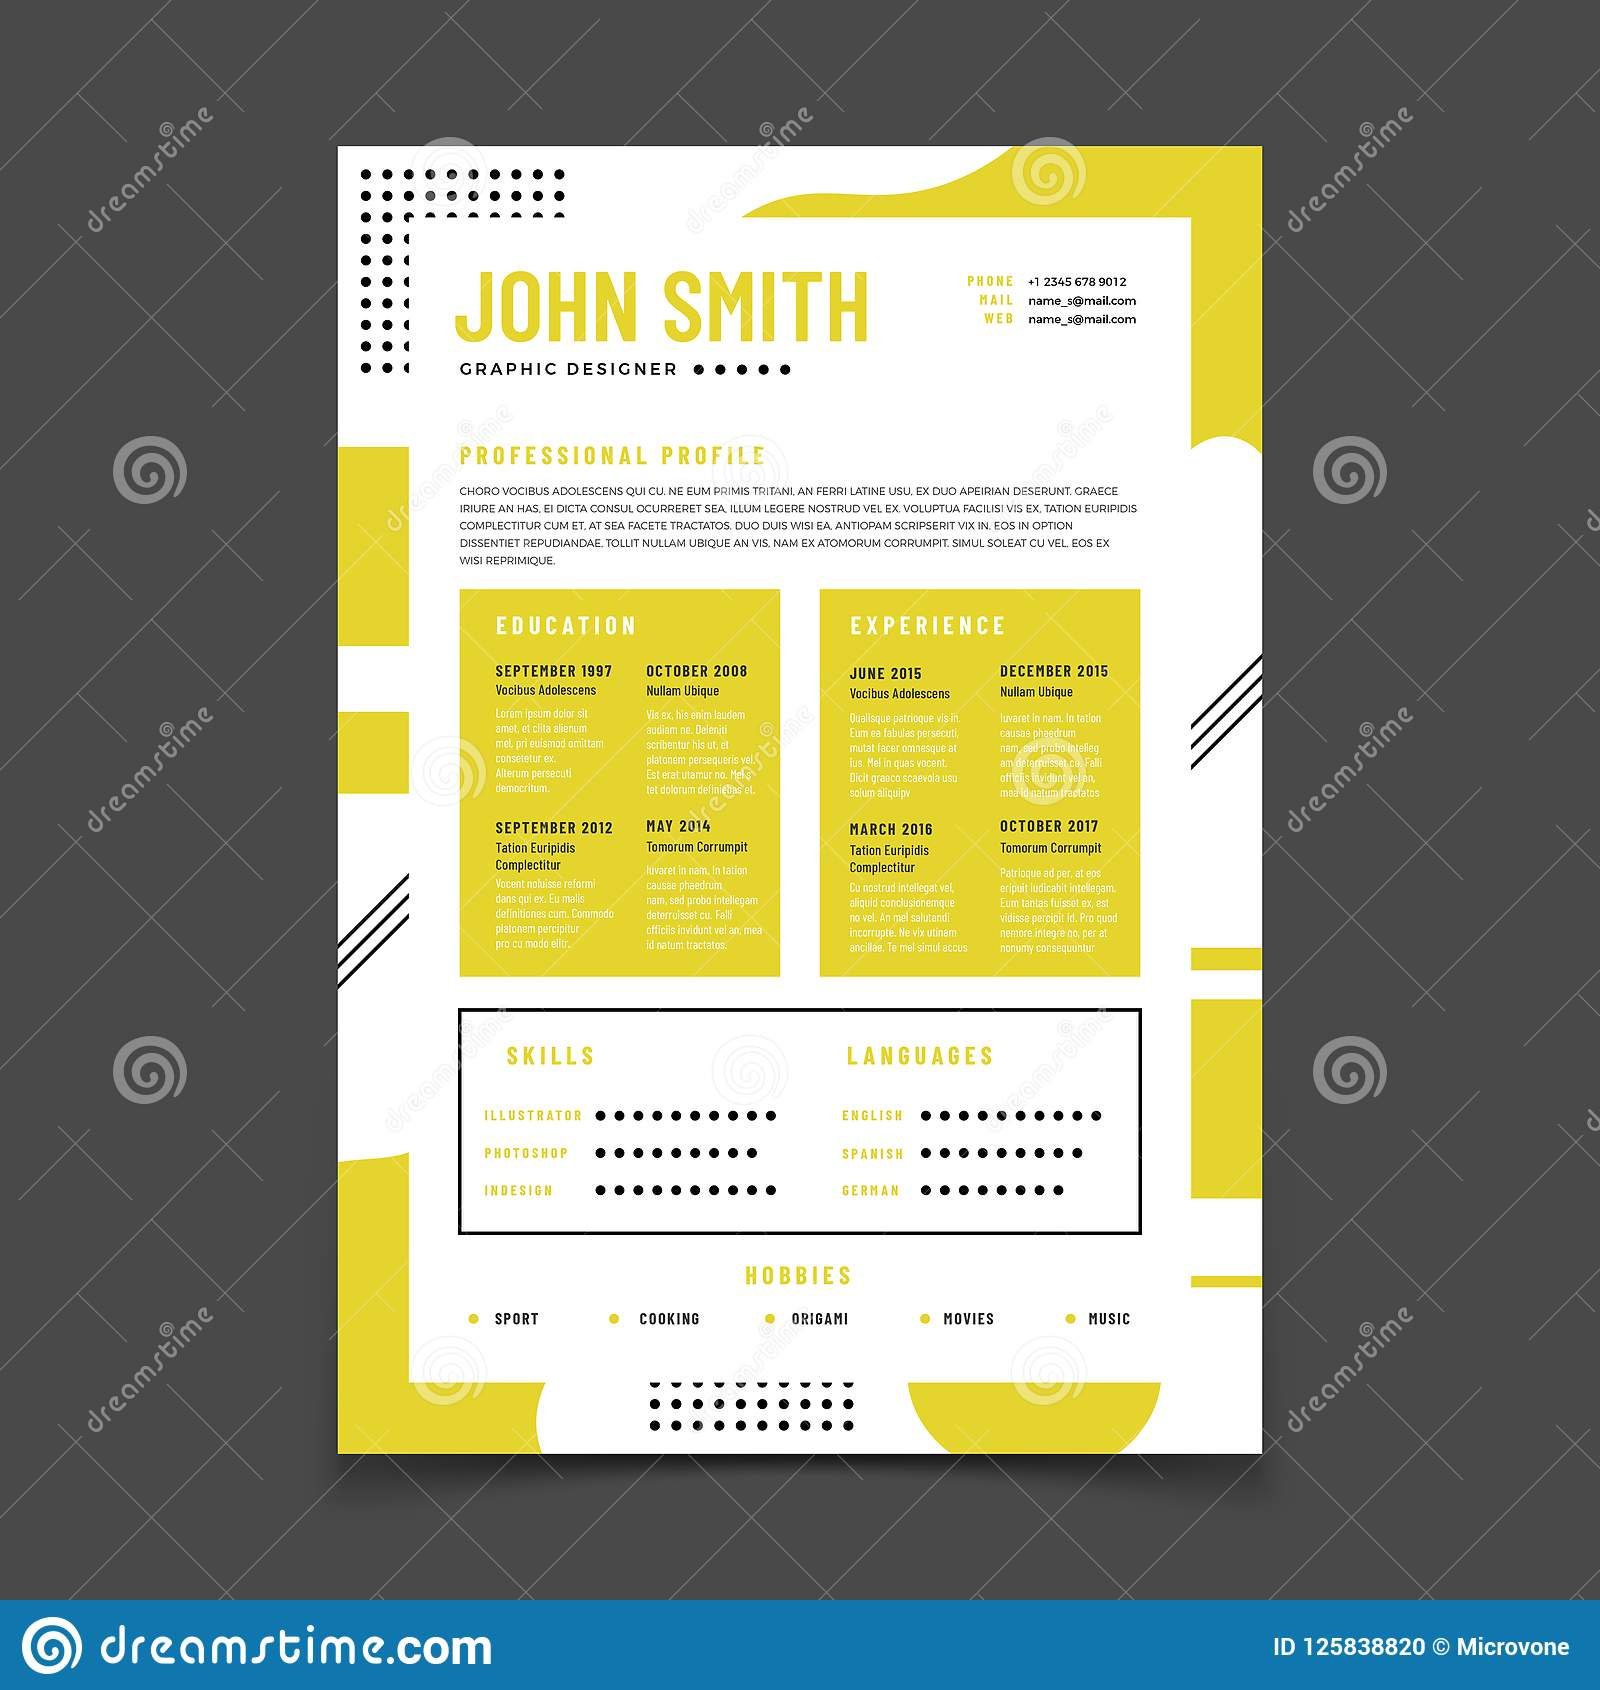 Cv Design Professional Resume With Business Details Curriculum And